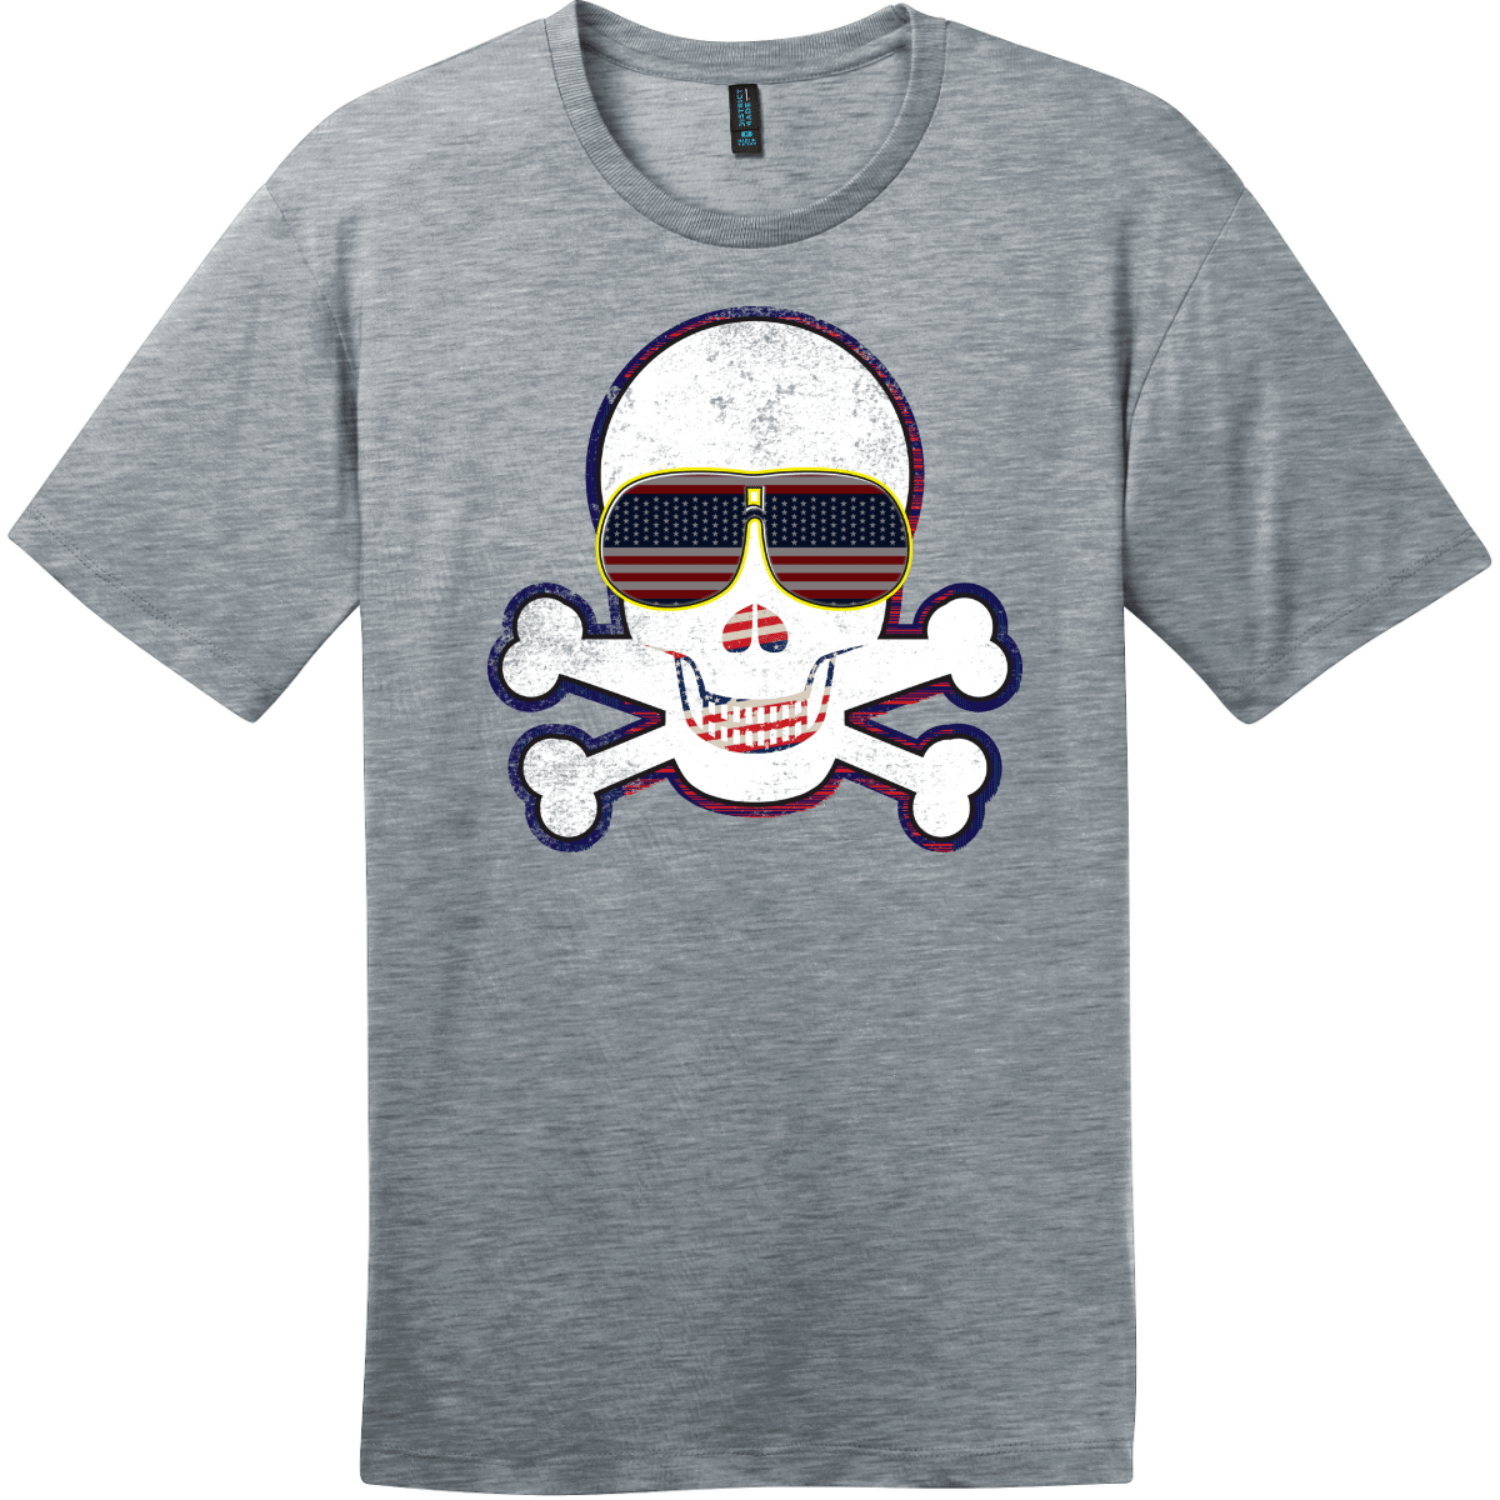 American Flag Sunglasses Retro Skull T-Shirt Heathered Steel District Perfect Weight Tee DT104